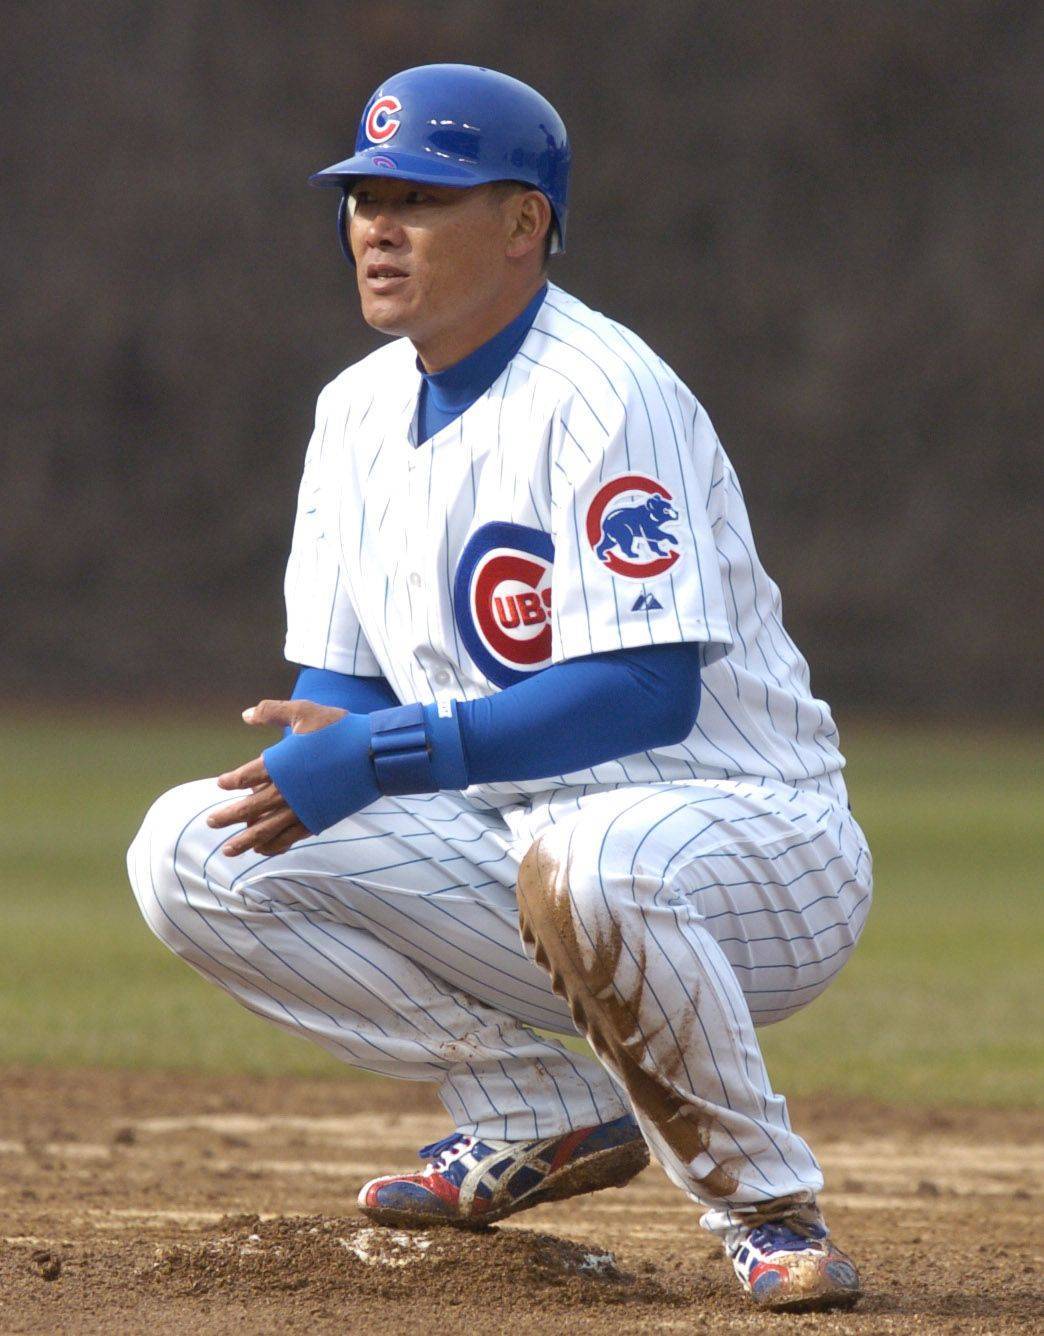 Kosuke Fukudome squats on second after advancing on a base hit .